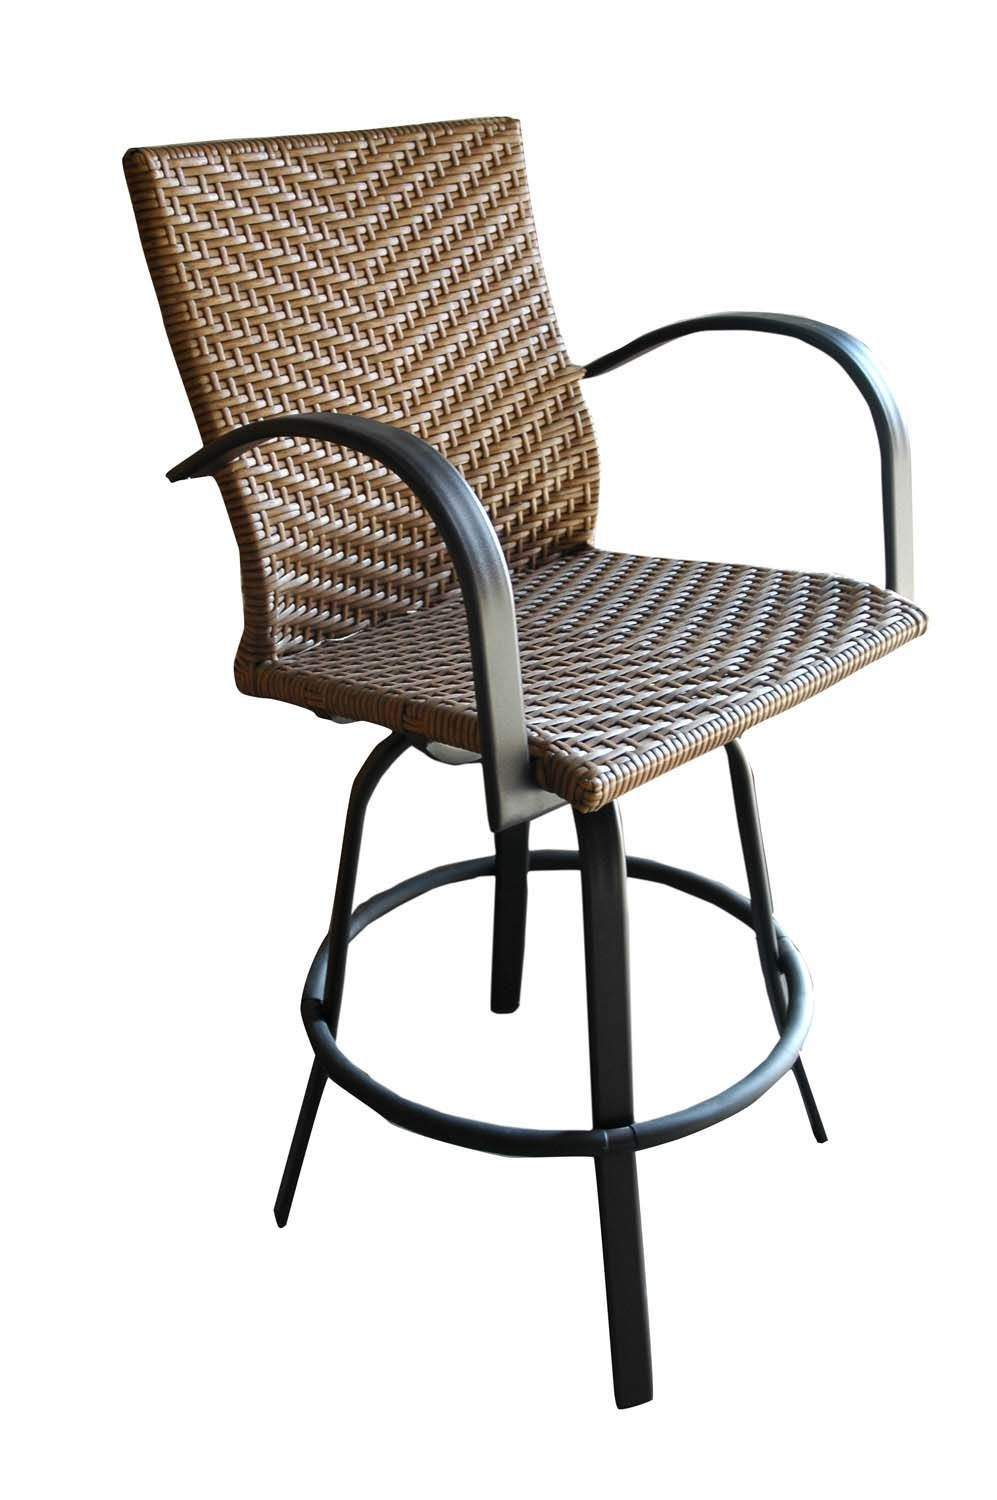 Outdoor Greatroom Naples Swivel Bar Stools, Set of 2, New eBay